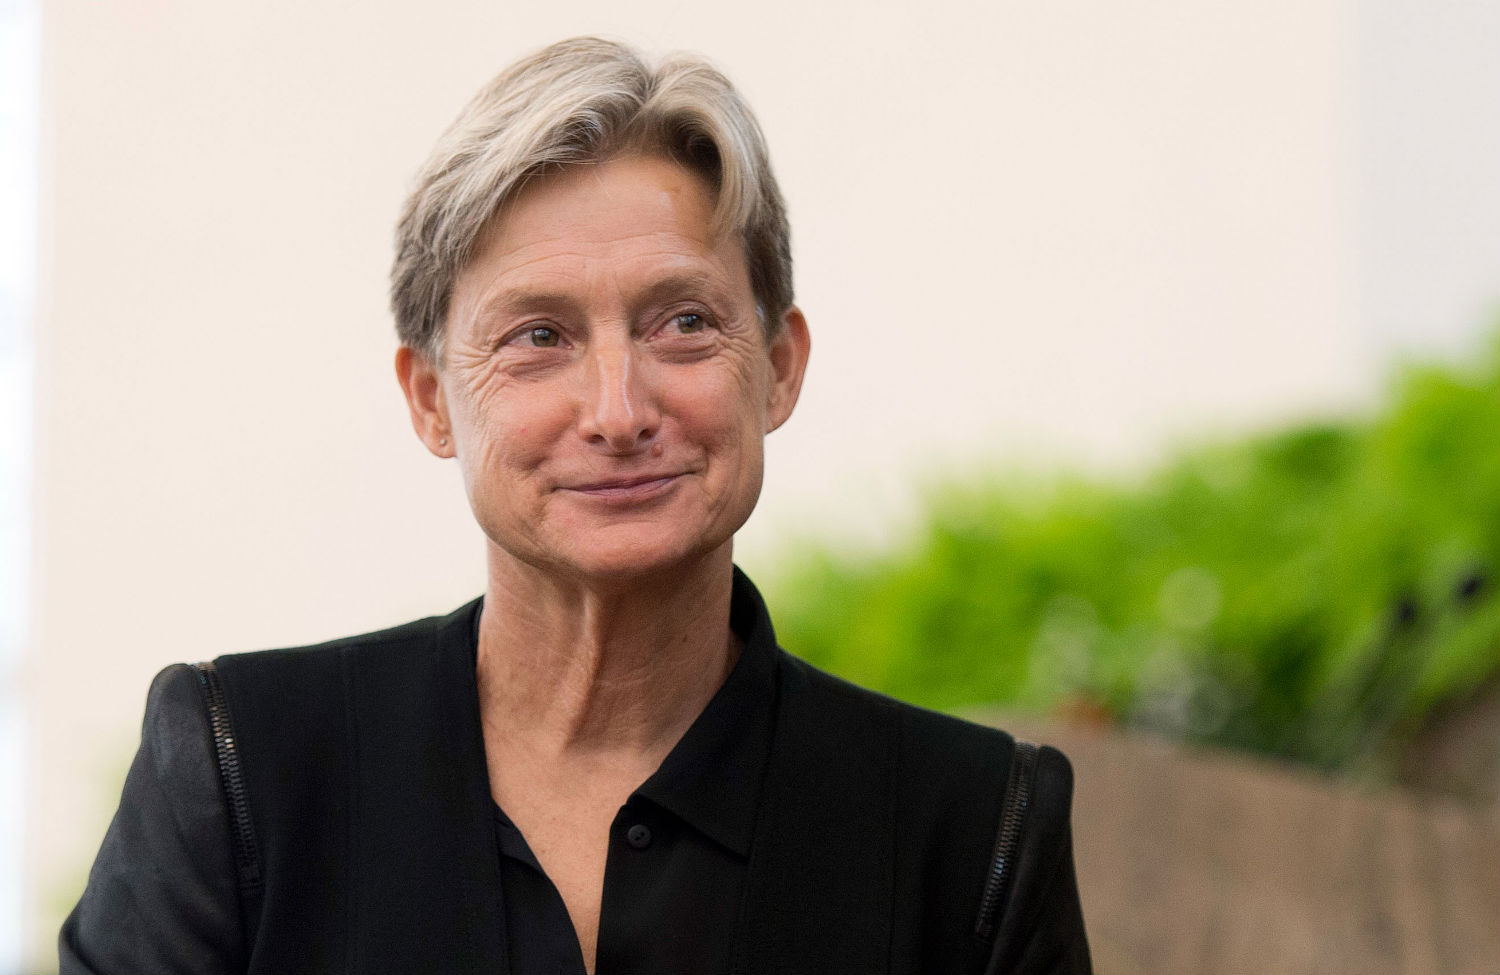 judith butler in media studies Judith butler's theory of performativity, introduced in her 1990 book gender trouble, has significantly shaped individual and collective understandings of gender this essay examines performativity as a framework for critically assessing gender performances in patriarchal workplace environments.